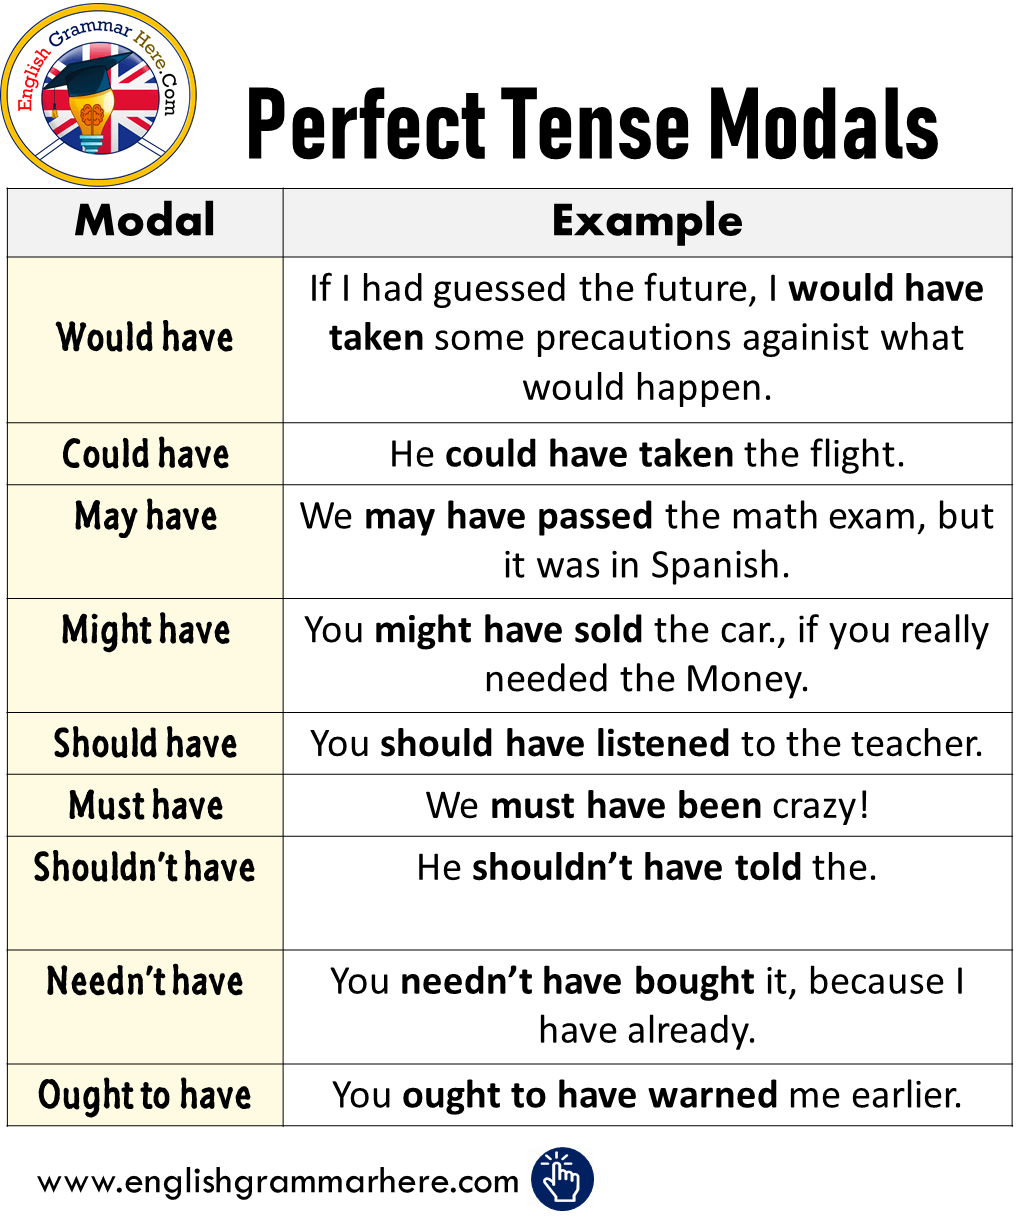 Perfect Tense Modals in English